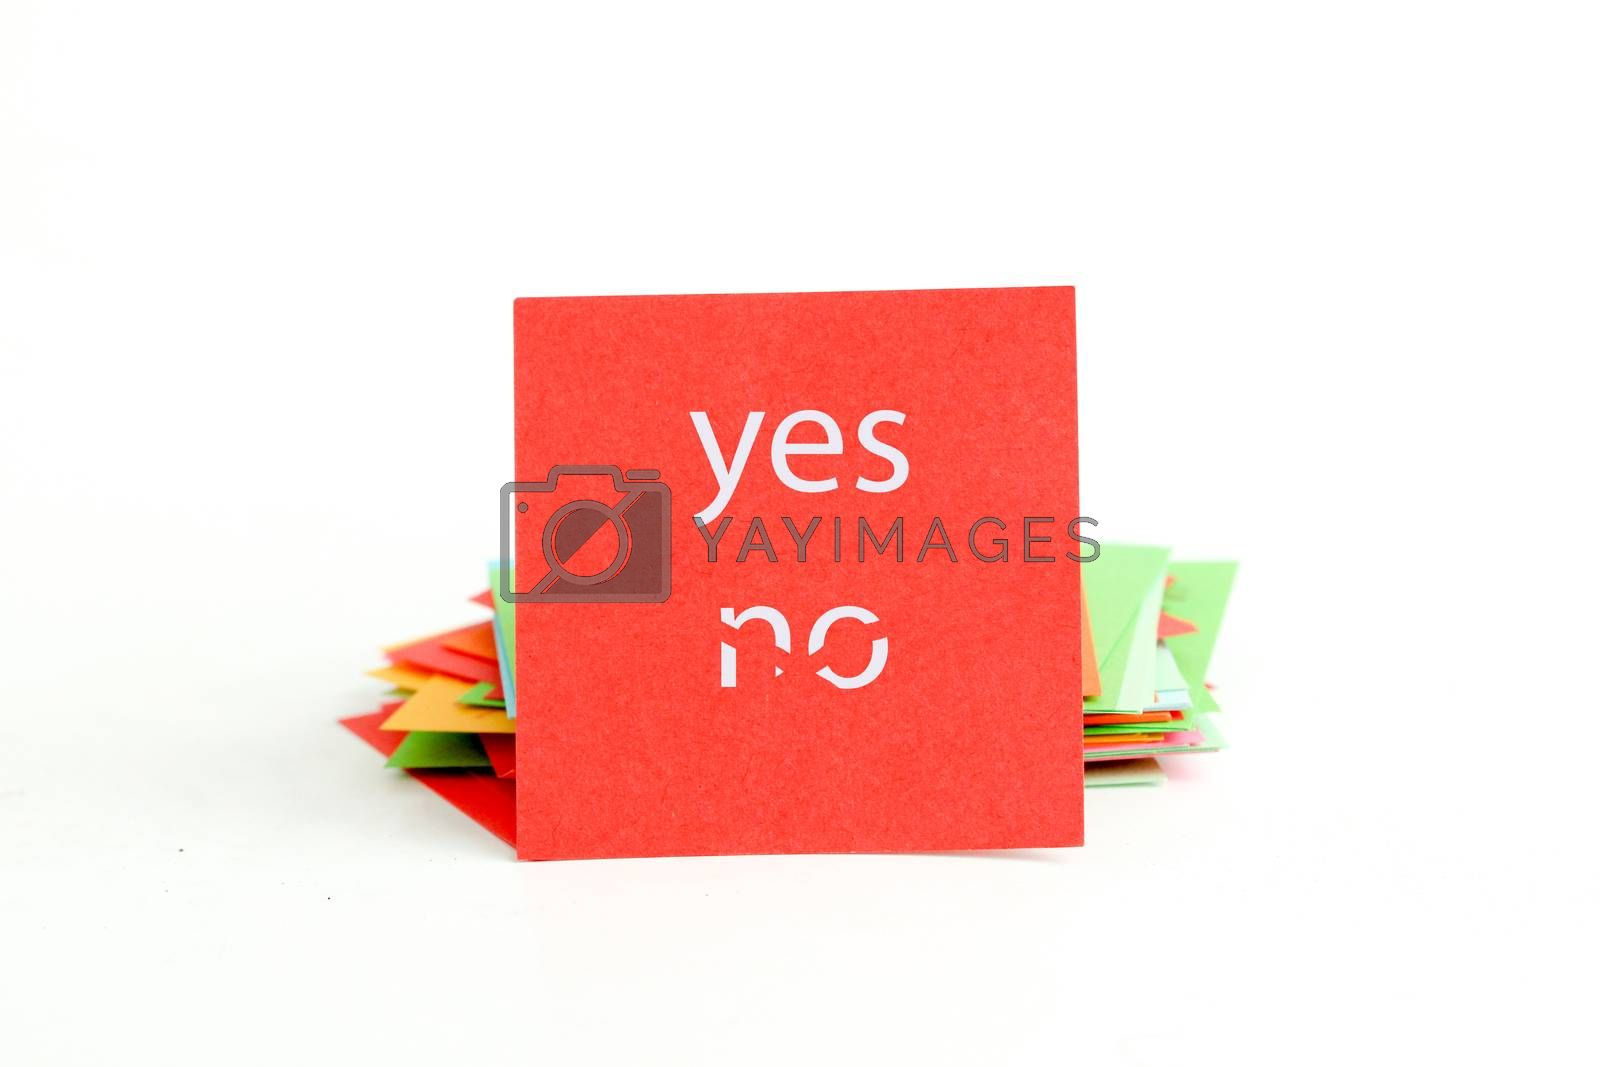 picture of a red note paper with text yes no